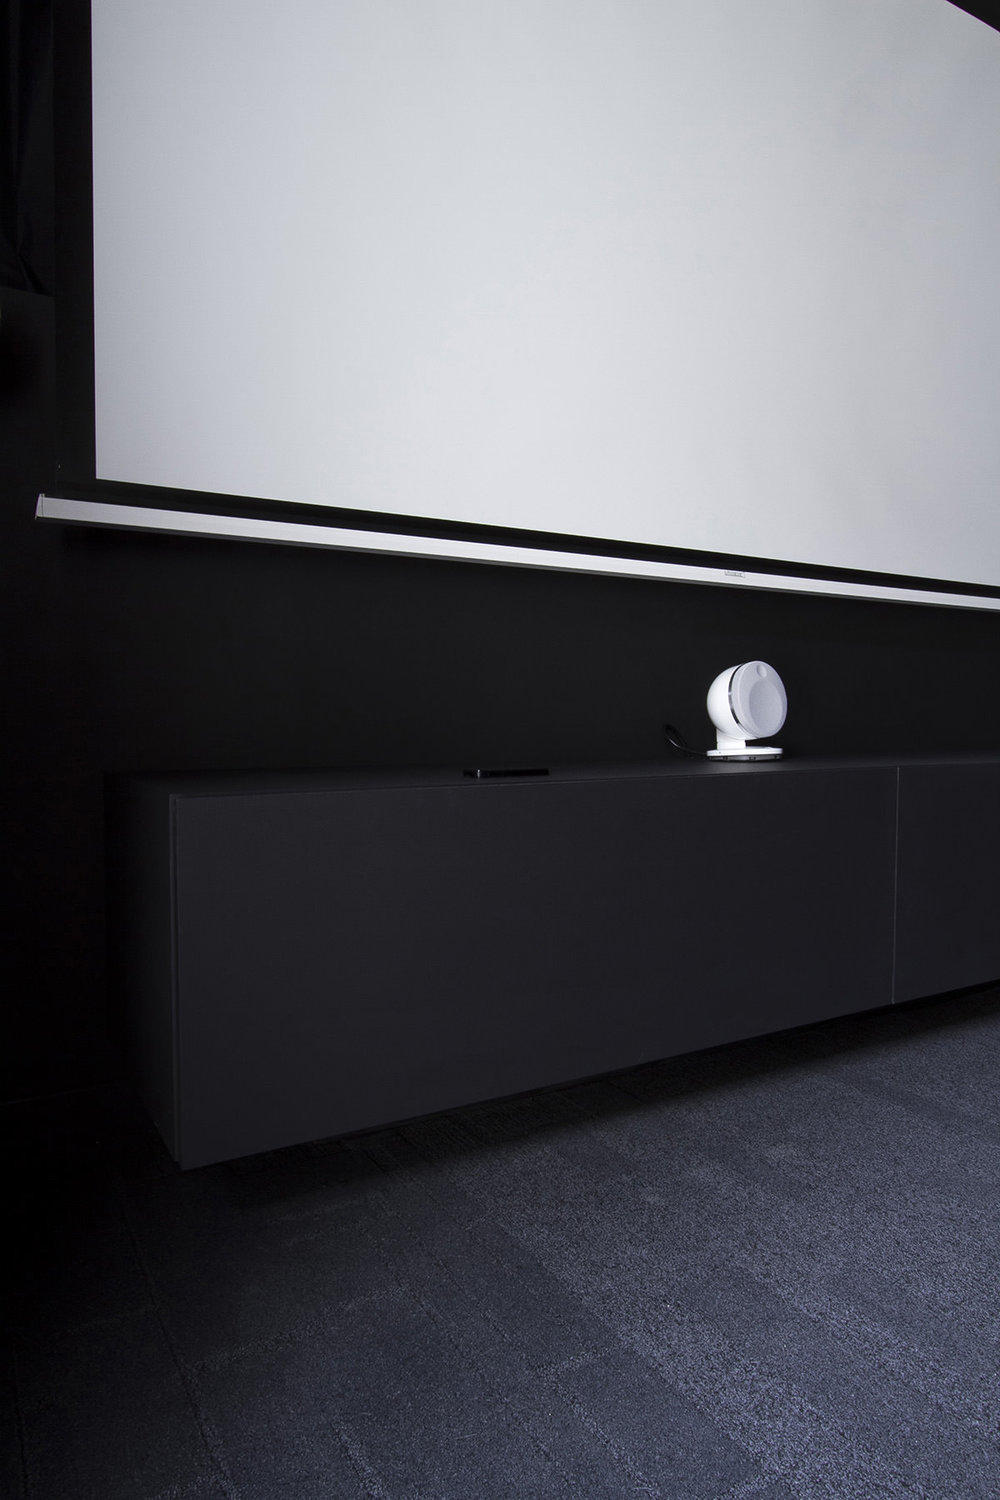 Home cinema Zoom ecran.jpg